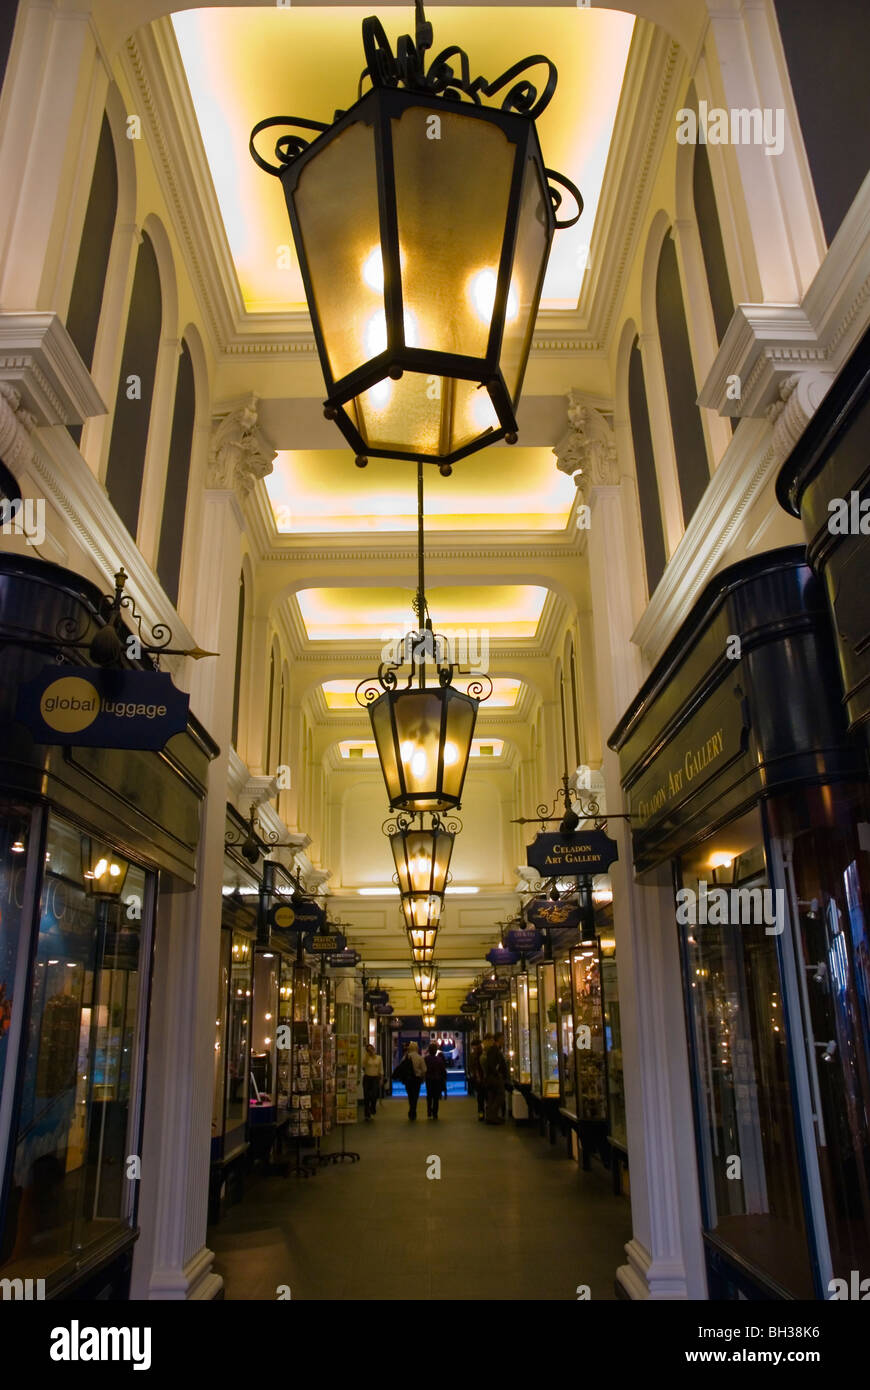 Princes Arcade Mayfair central London England UK - Stock Image